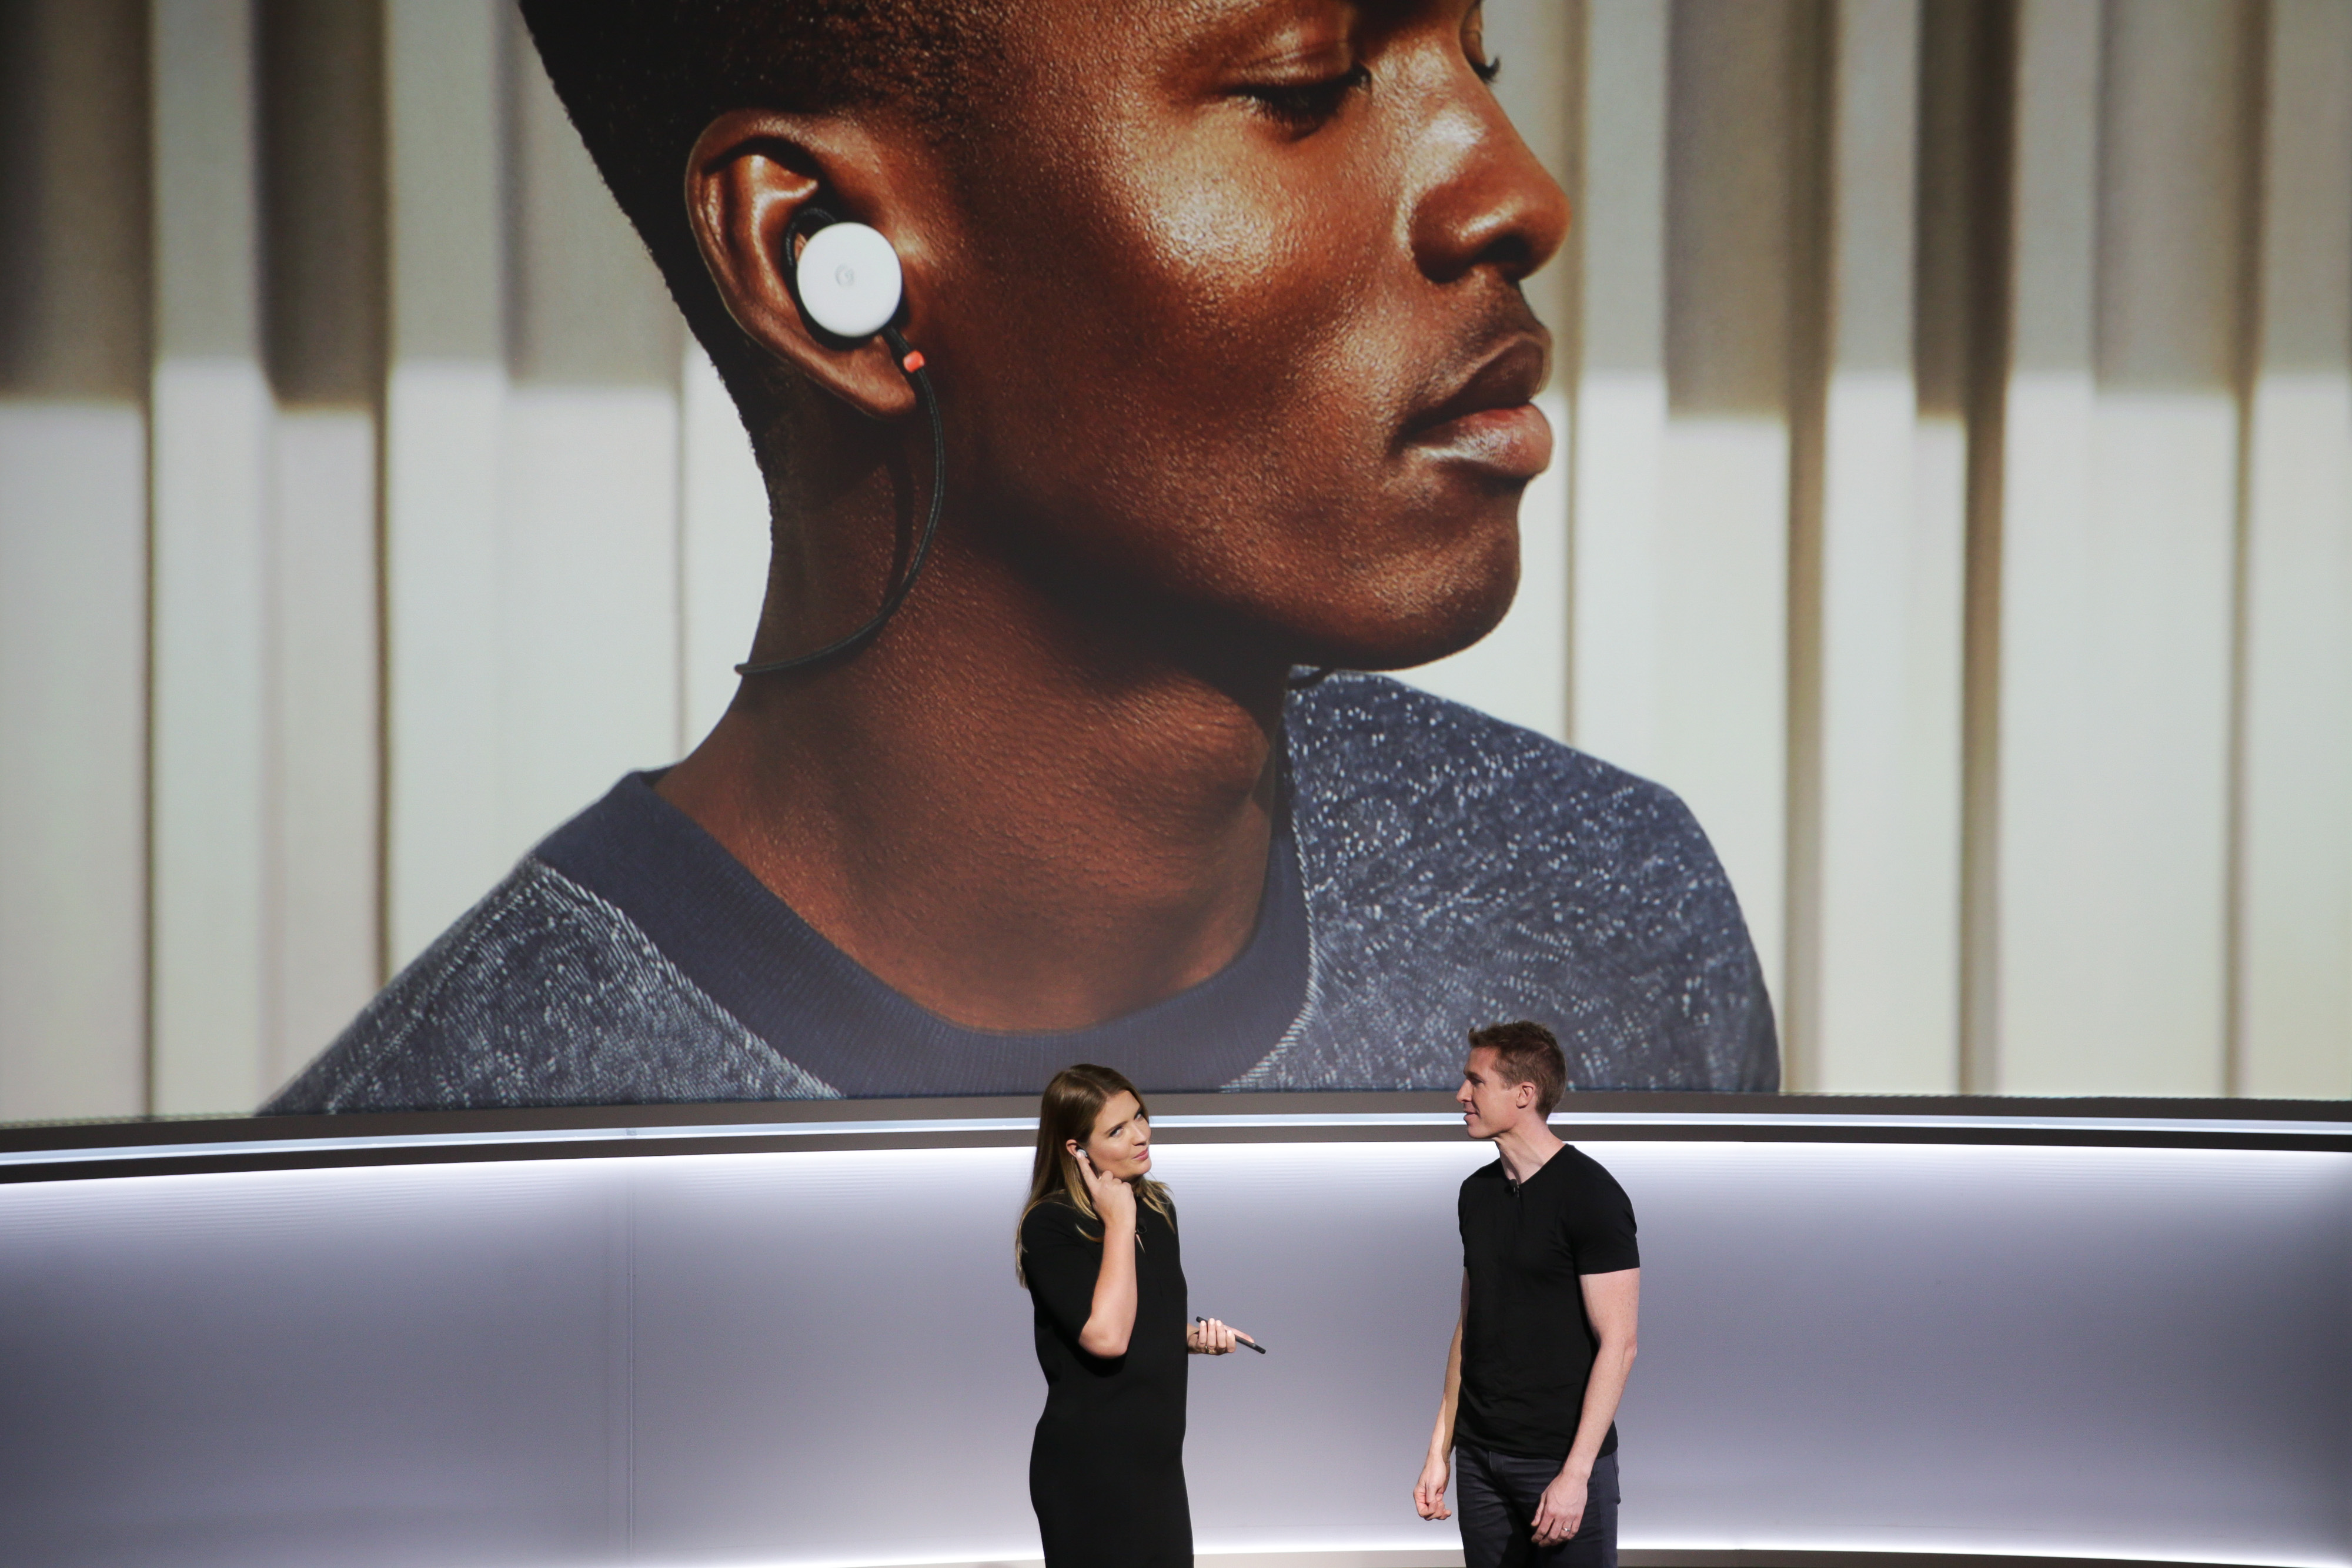 Isabelle Olsson, lead designer for home hardware for Google, and Juston Payne, Product Manager for Google Clips, demonstrate two-way translation using Google Pixel Buds and the Google Pixel 2 smartphone at a product launch event on October 4, 2017 at the SFJAZZ Center in San Francisco, California. (Photo: ELIJAH NOUVELAGE/AFP/Getty Images)